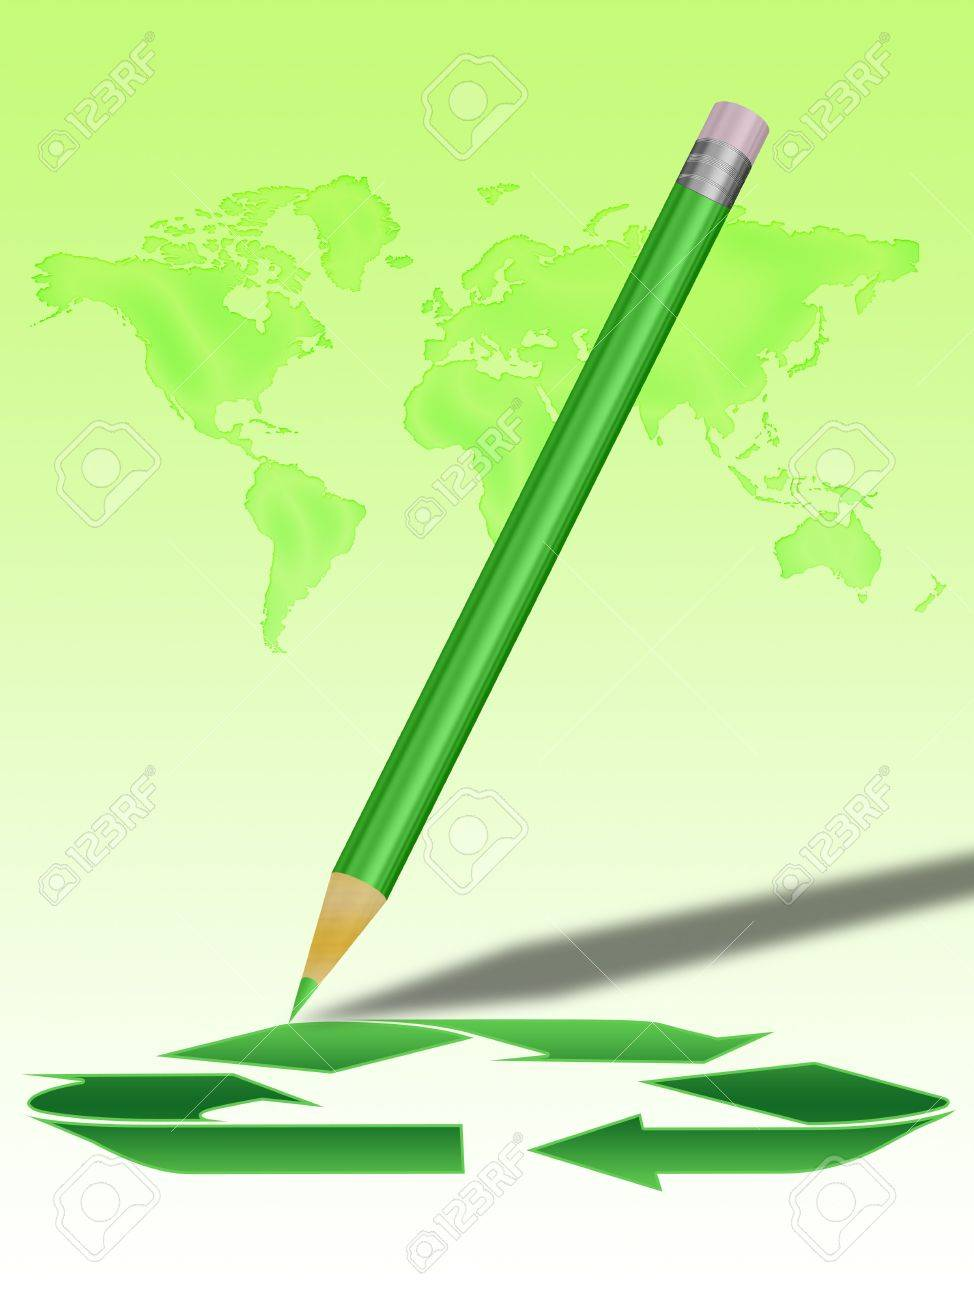 Green Pencil Drawing The Recycling Symbol Map Of The Earth In